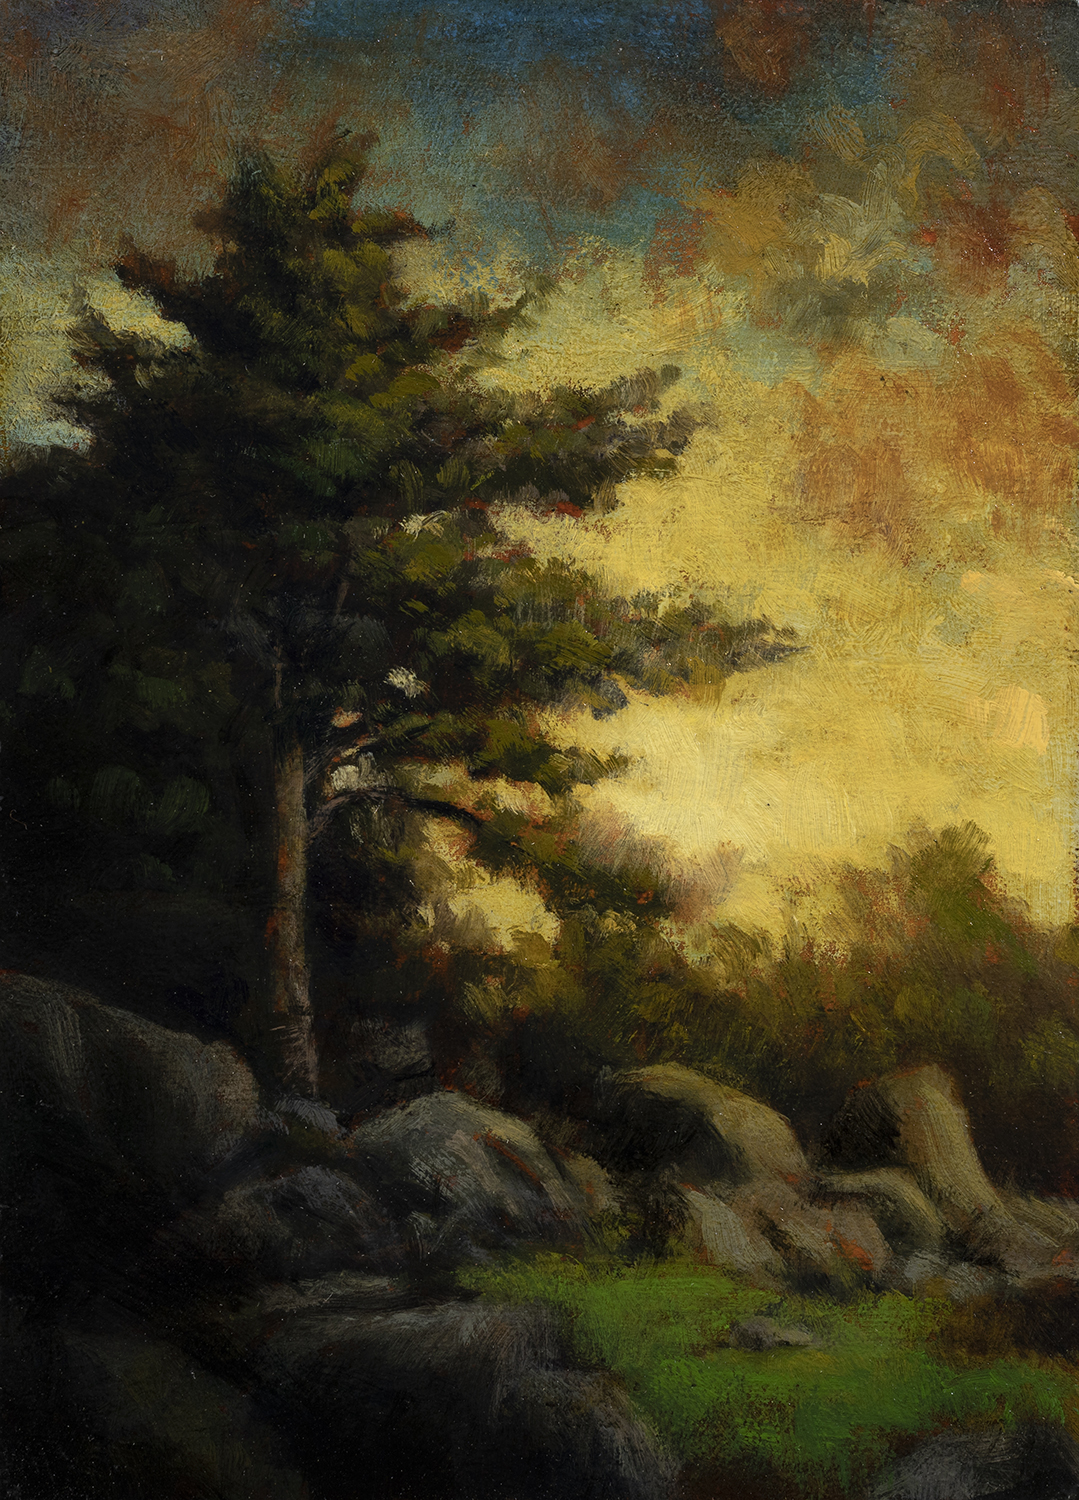 Spring Evening by M Francis McCarthy - 5x7 Oil on Wood Panel